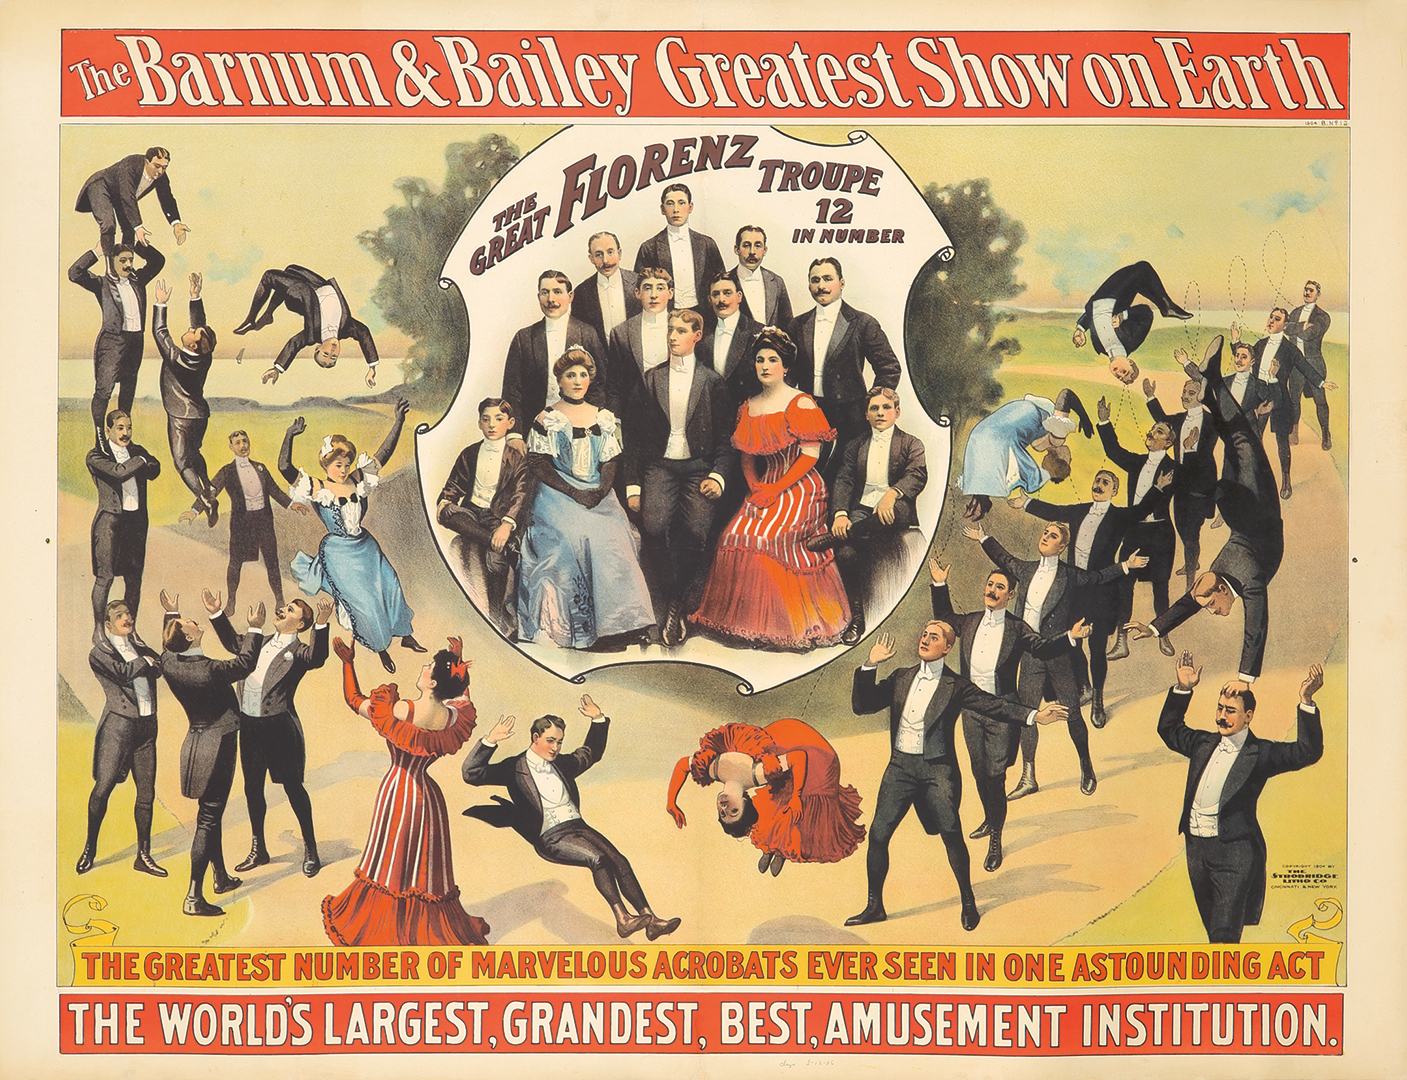 25. Barnum & Bailey / Great Florenz Troupe. 1904.